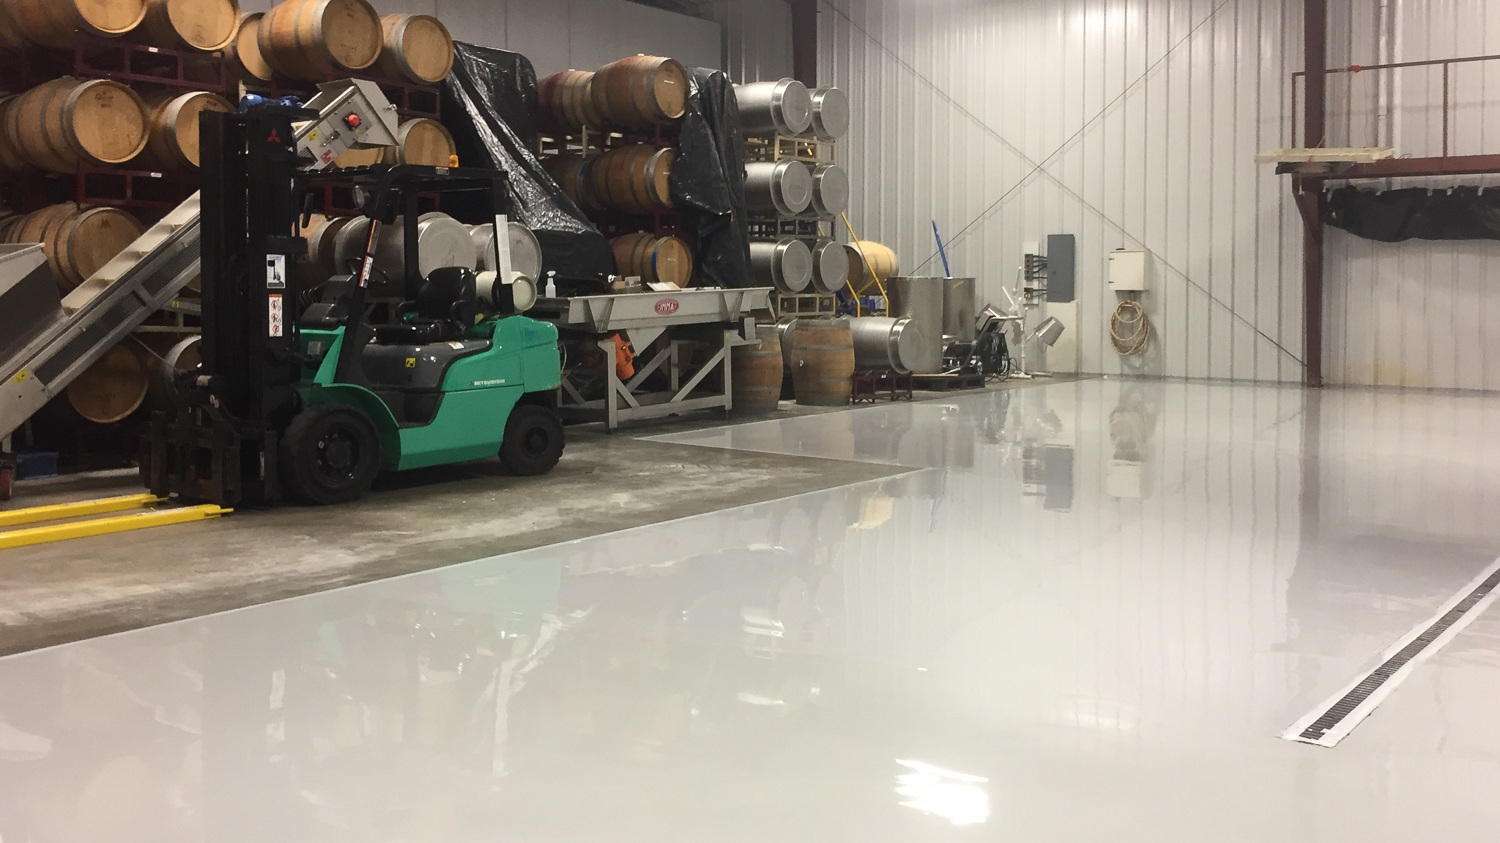 Industrial Concrete Coatings - Industrial Concrete Coatings are needed for extreme chemical resistance.